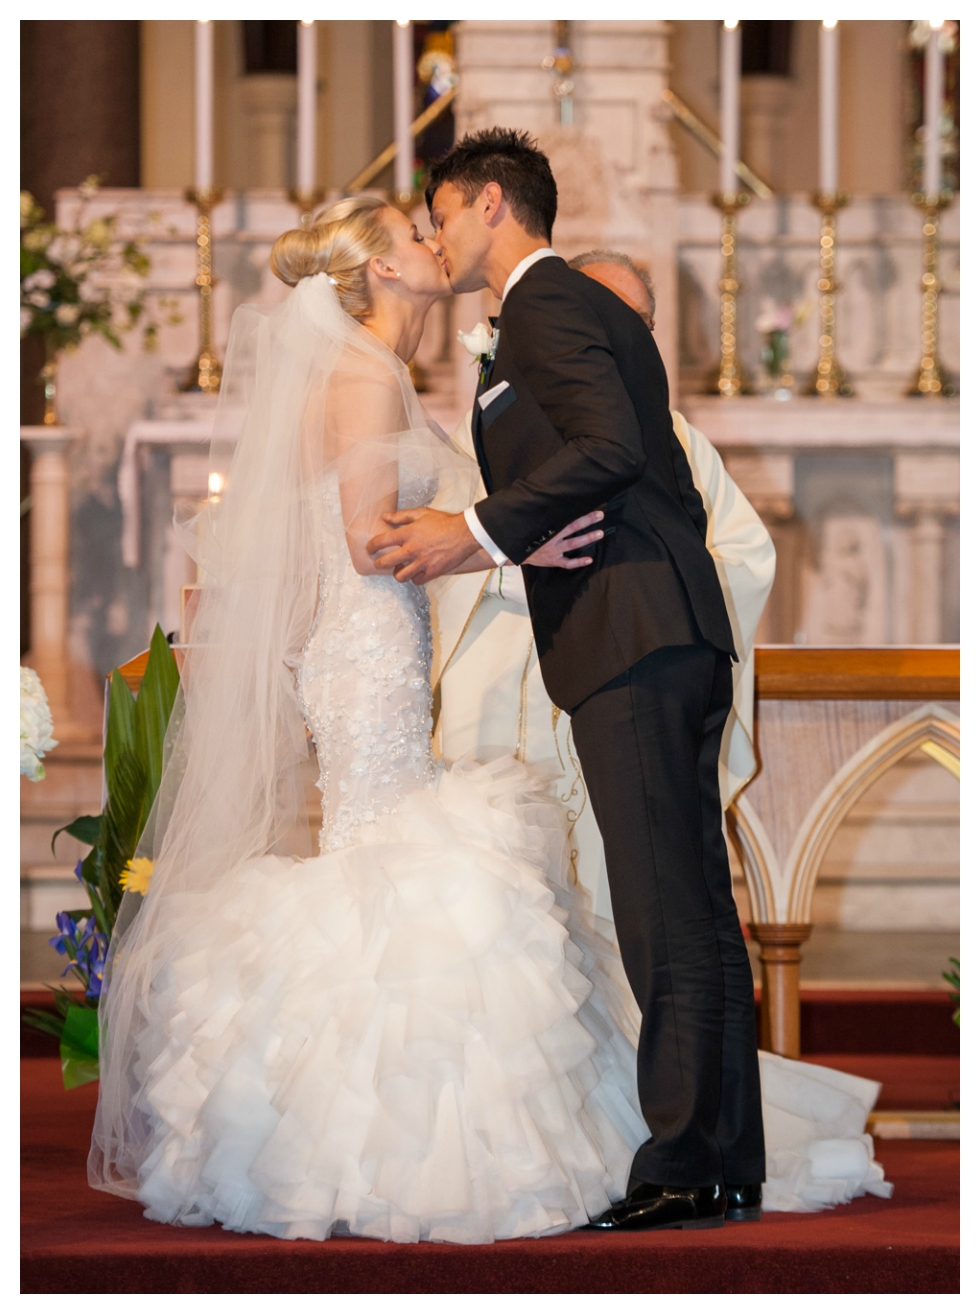 first kiss, saint ignatius, steven khalil, richmond wedding photographer